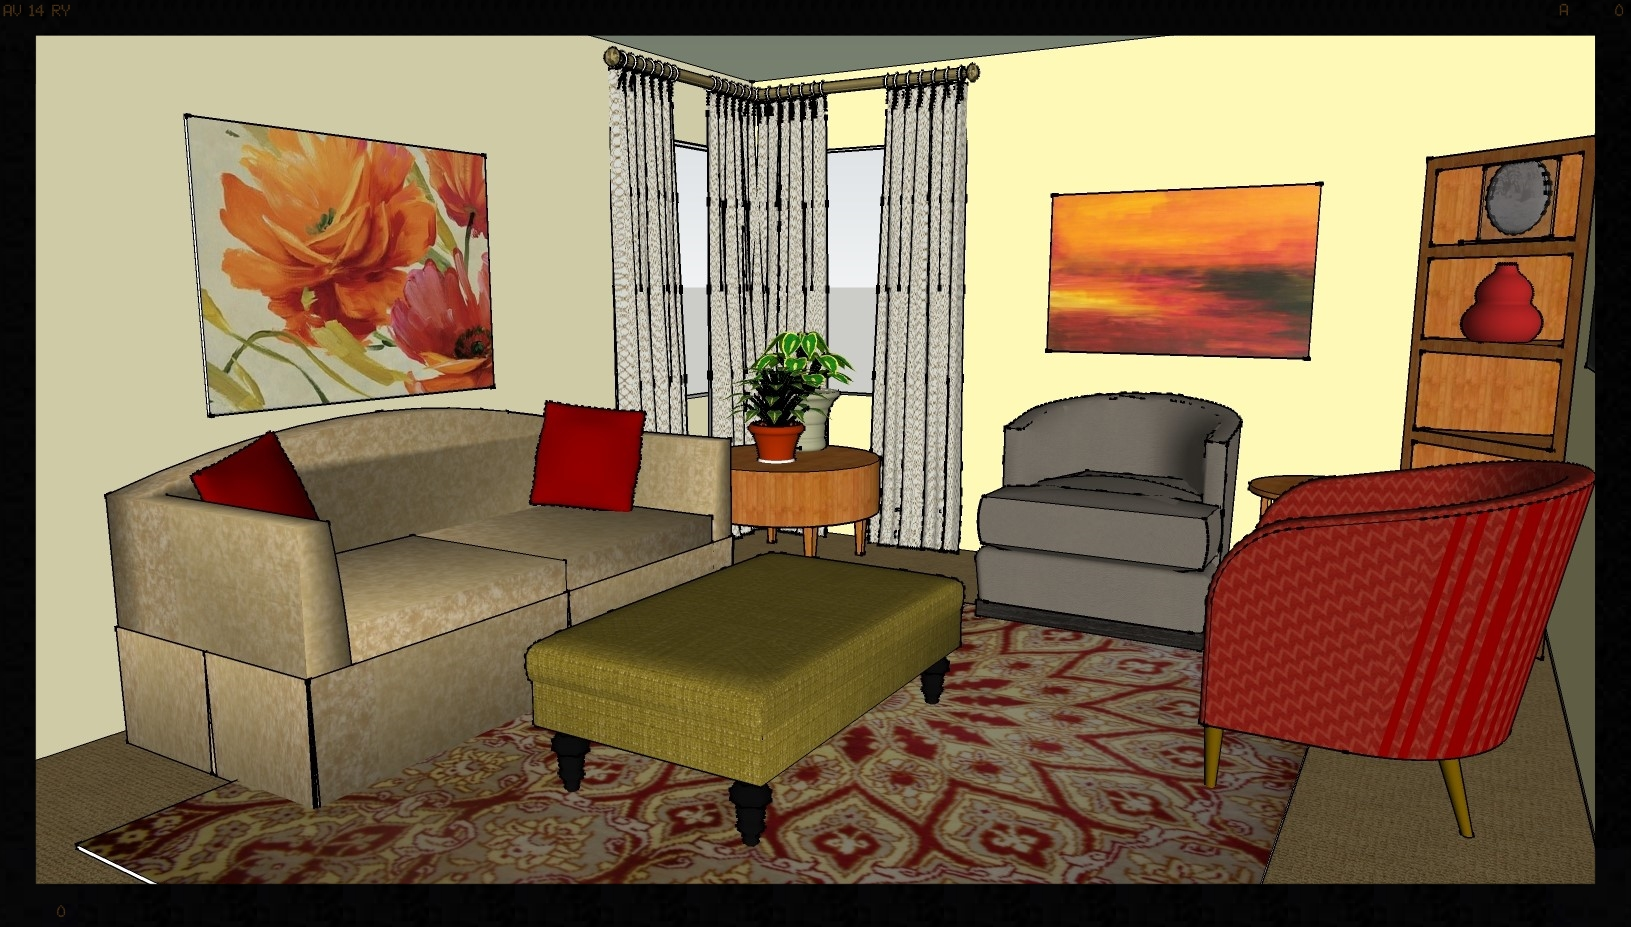 Perspective view of the room